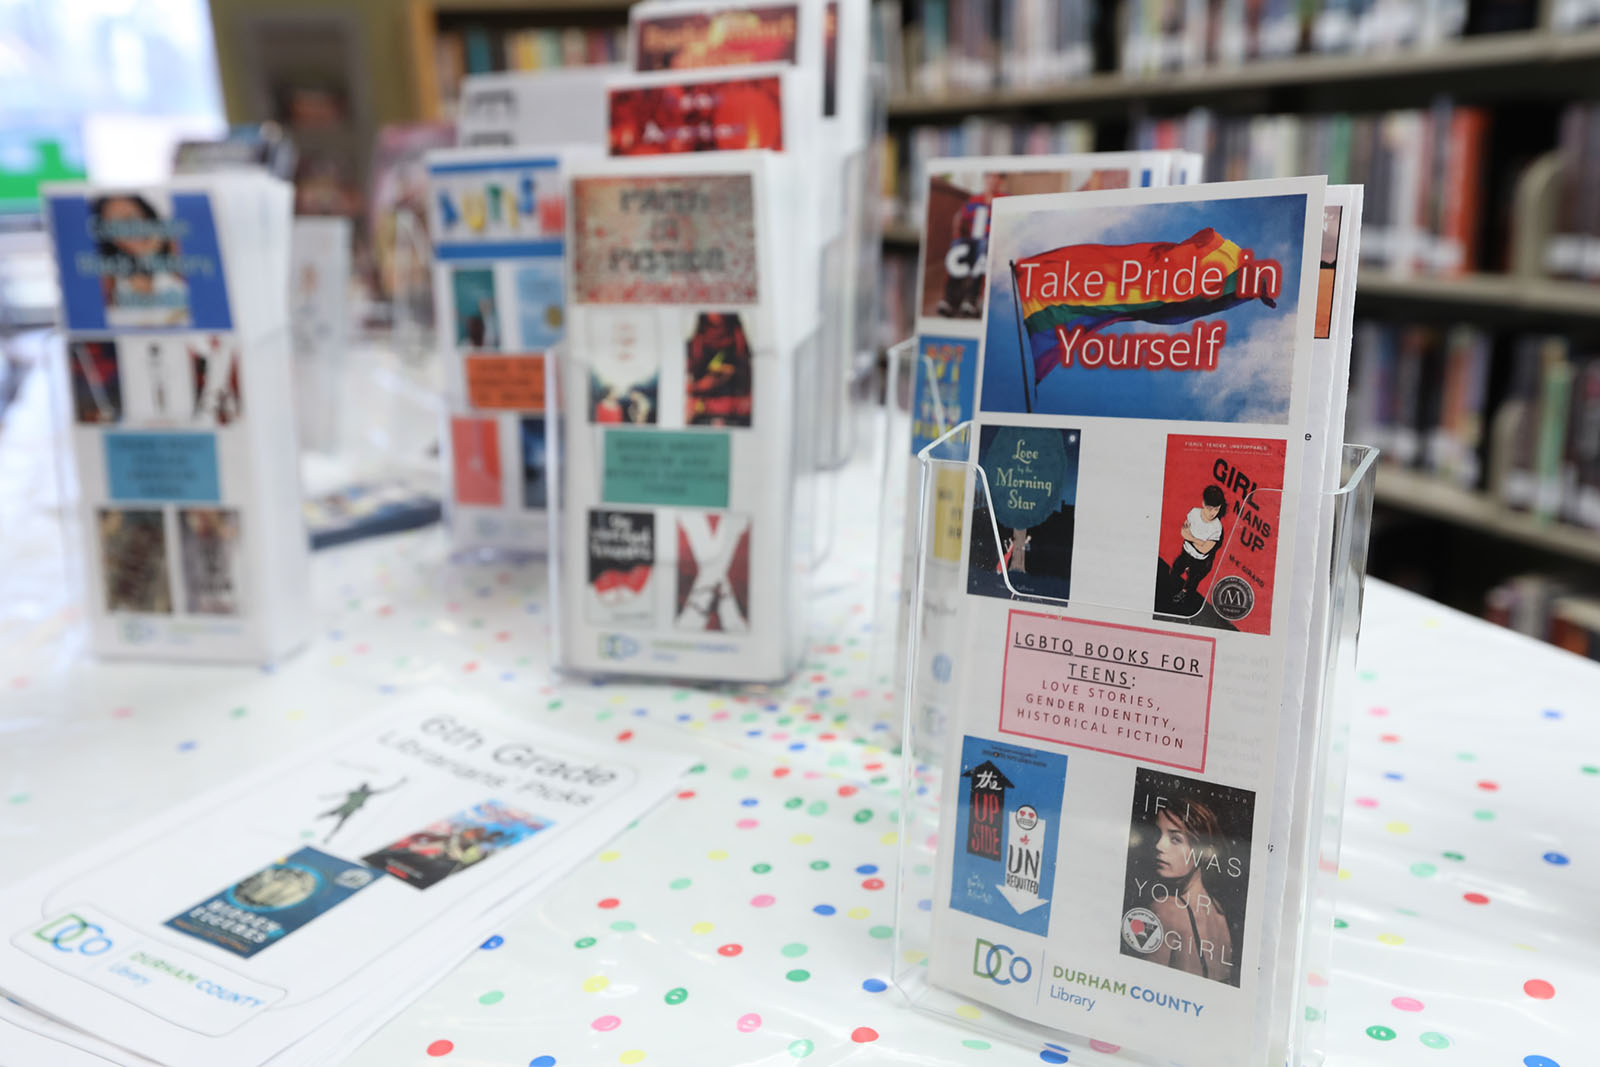 """Closeup of a printed book list titled """"Take Pride in Yourself: LGBTQ Books for Teens"""", with other printed lists visible in the background"""